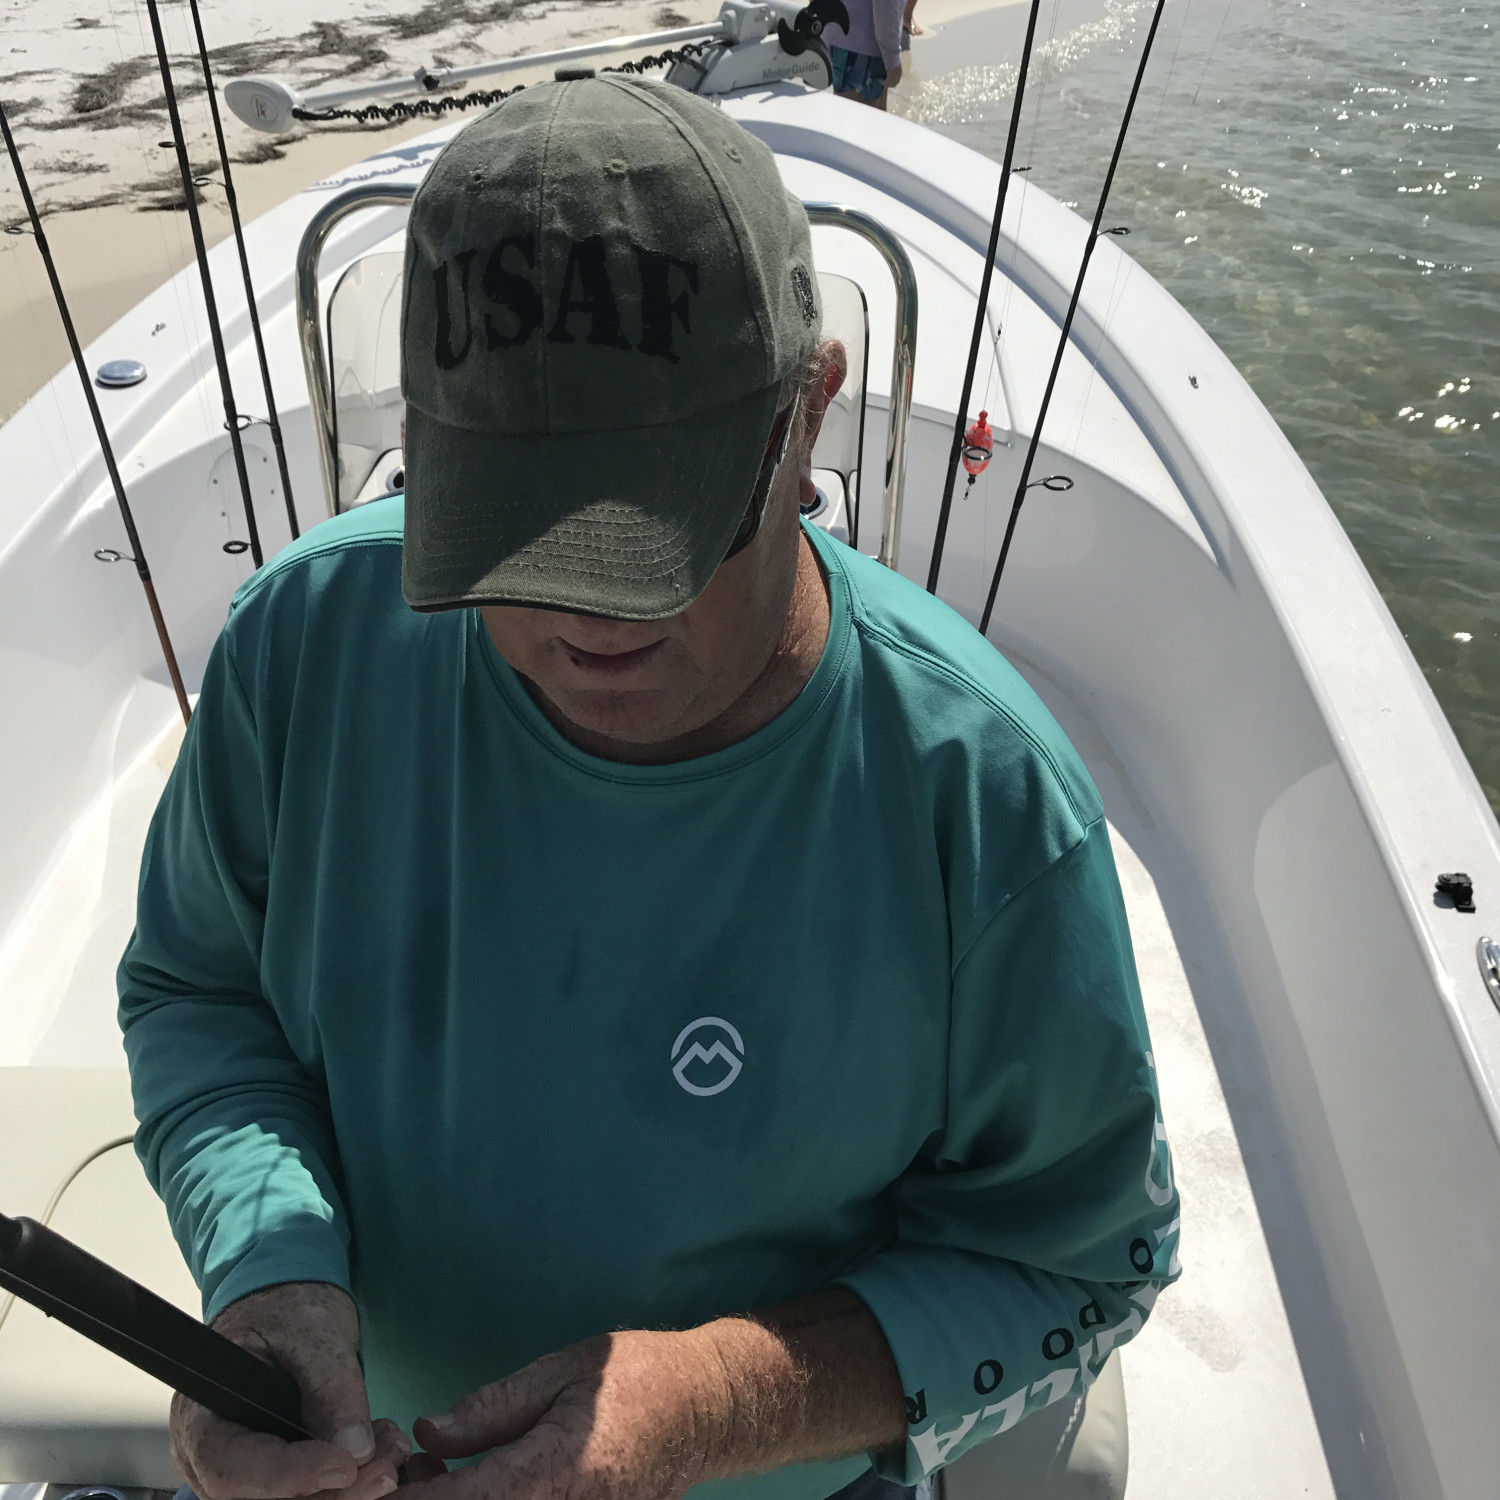 Title: Fishing with Pops - On board their Sportsman Island Bay 20 Bay Boat - Location: Panama City FL. Participating in the Photo Contest #SportsmanApril2018